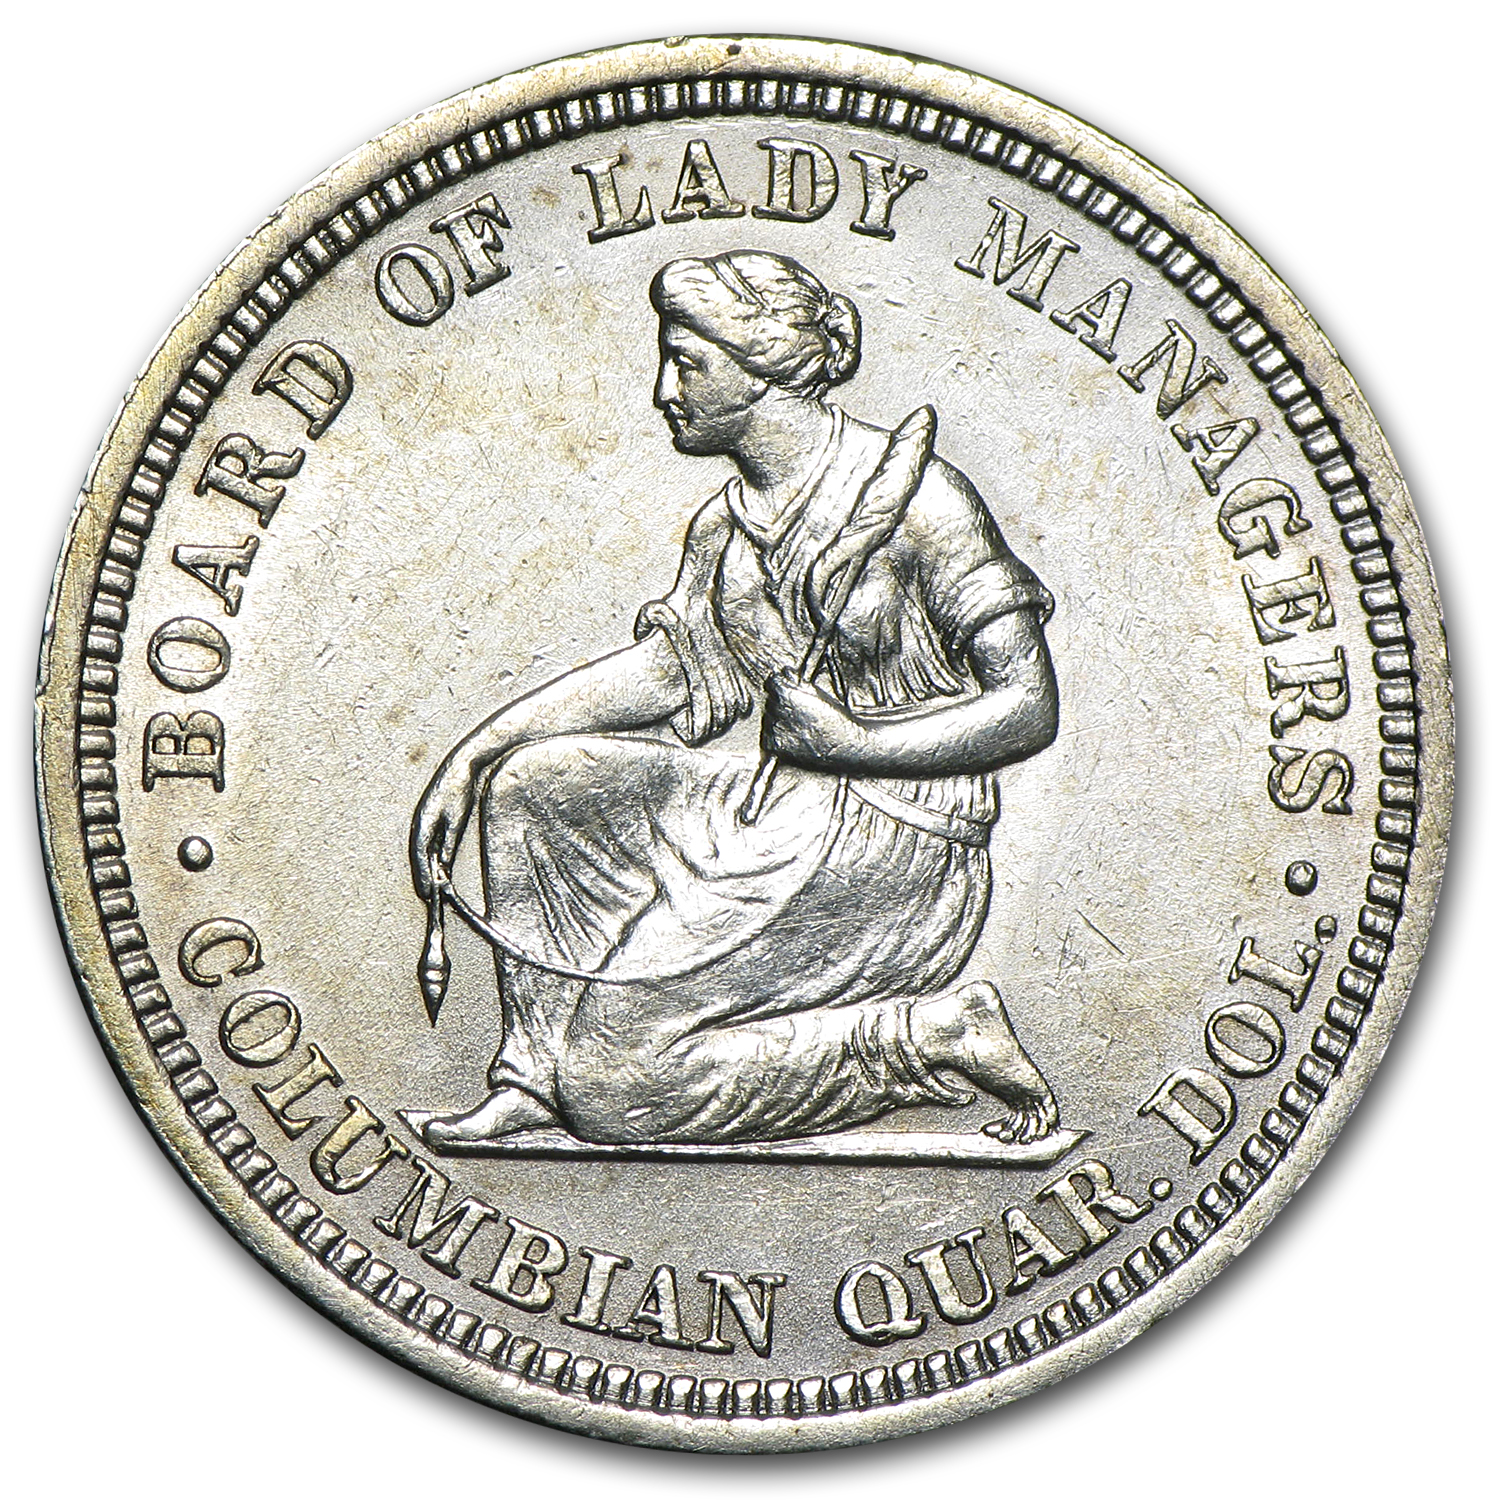 1893 Isabella Commemorative Quarter - Almost Uncirculated